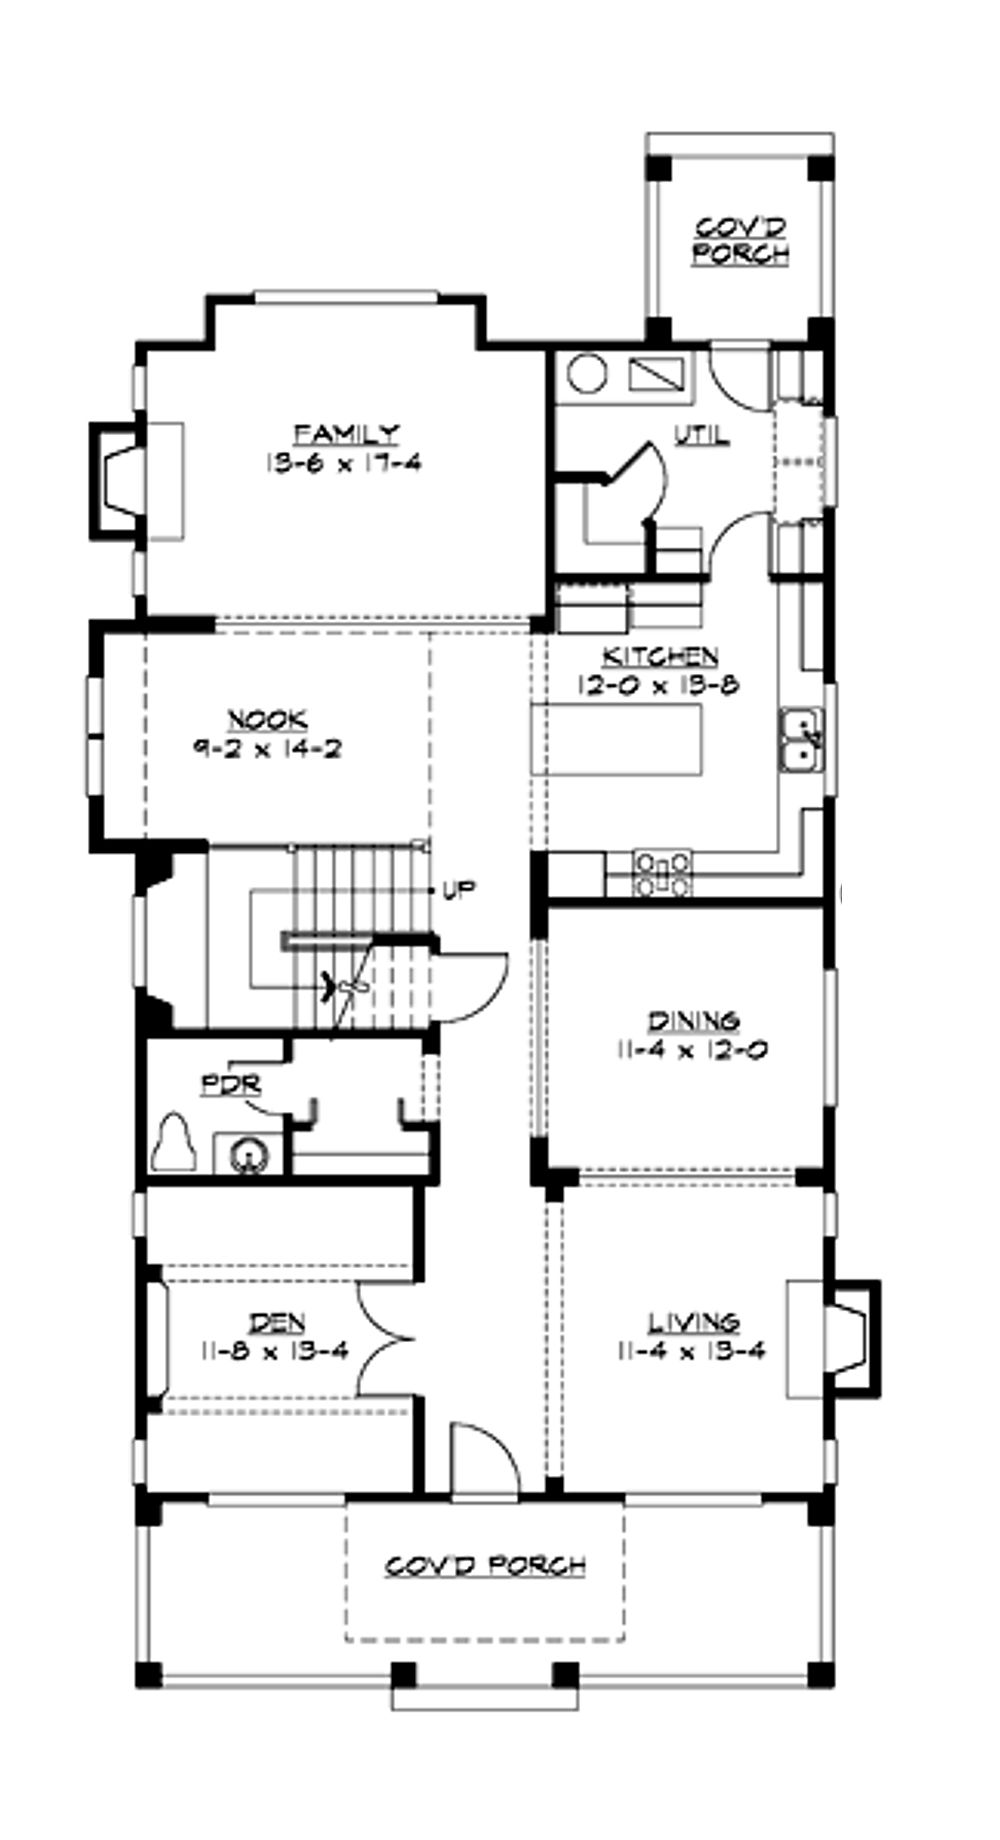 Main floor plan for narrow lot design.